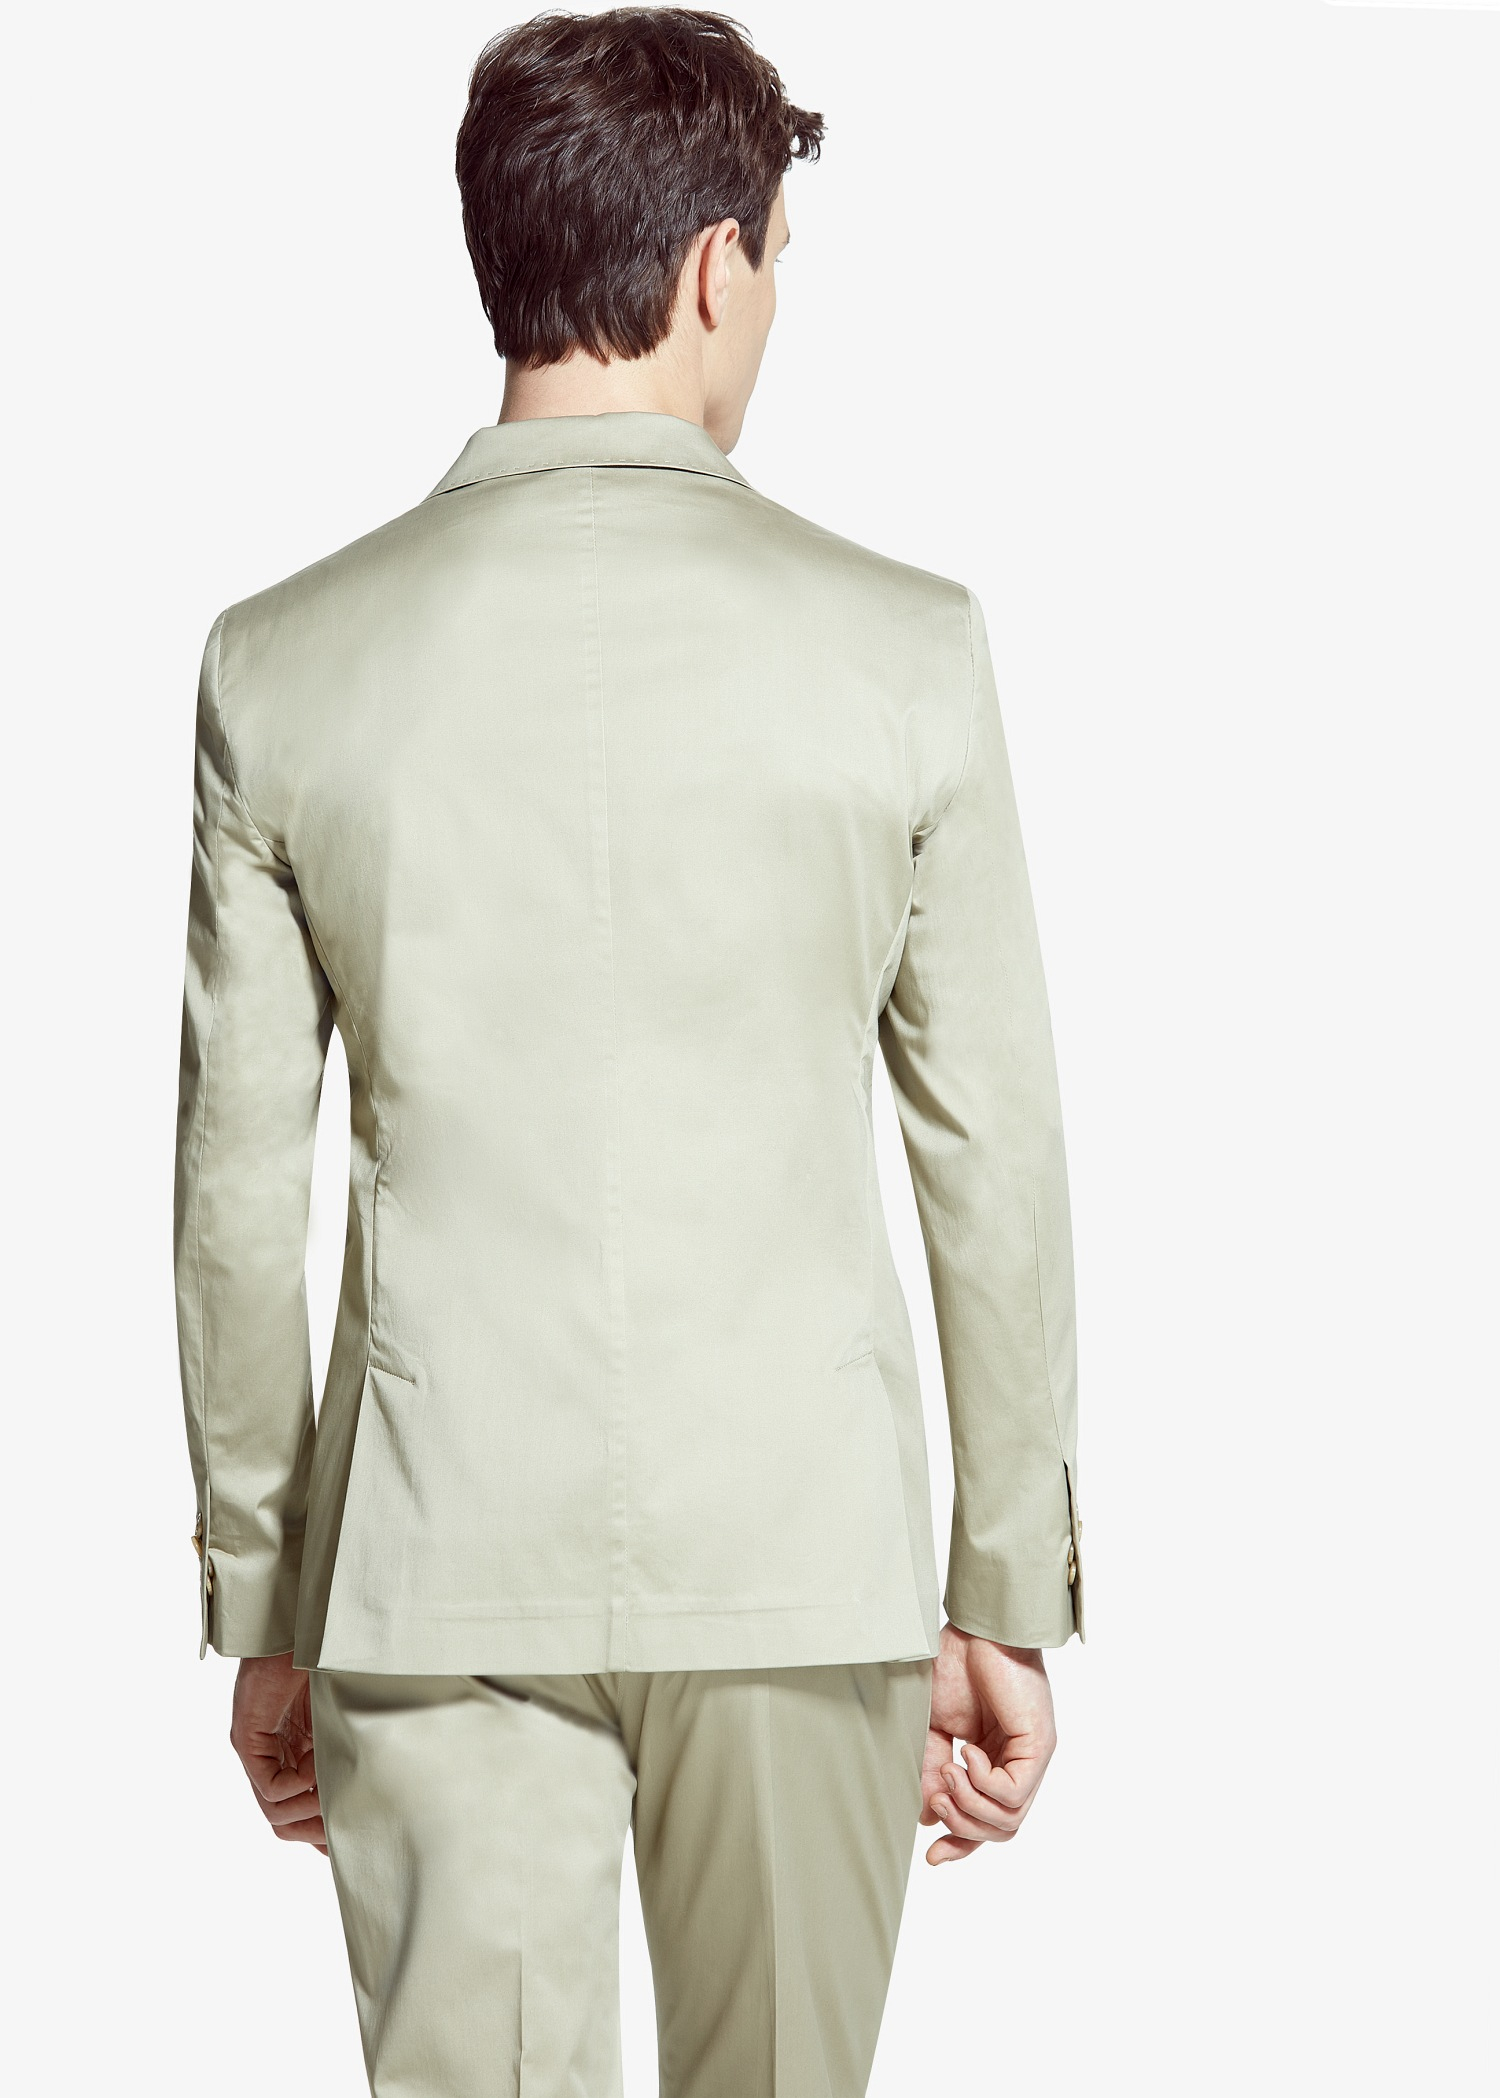 forex-trade1.ga is your one stop shop for all your men's suits and formal wear needs Online. We have a wide selection of quality, stylish suits you can choose from.